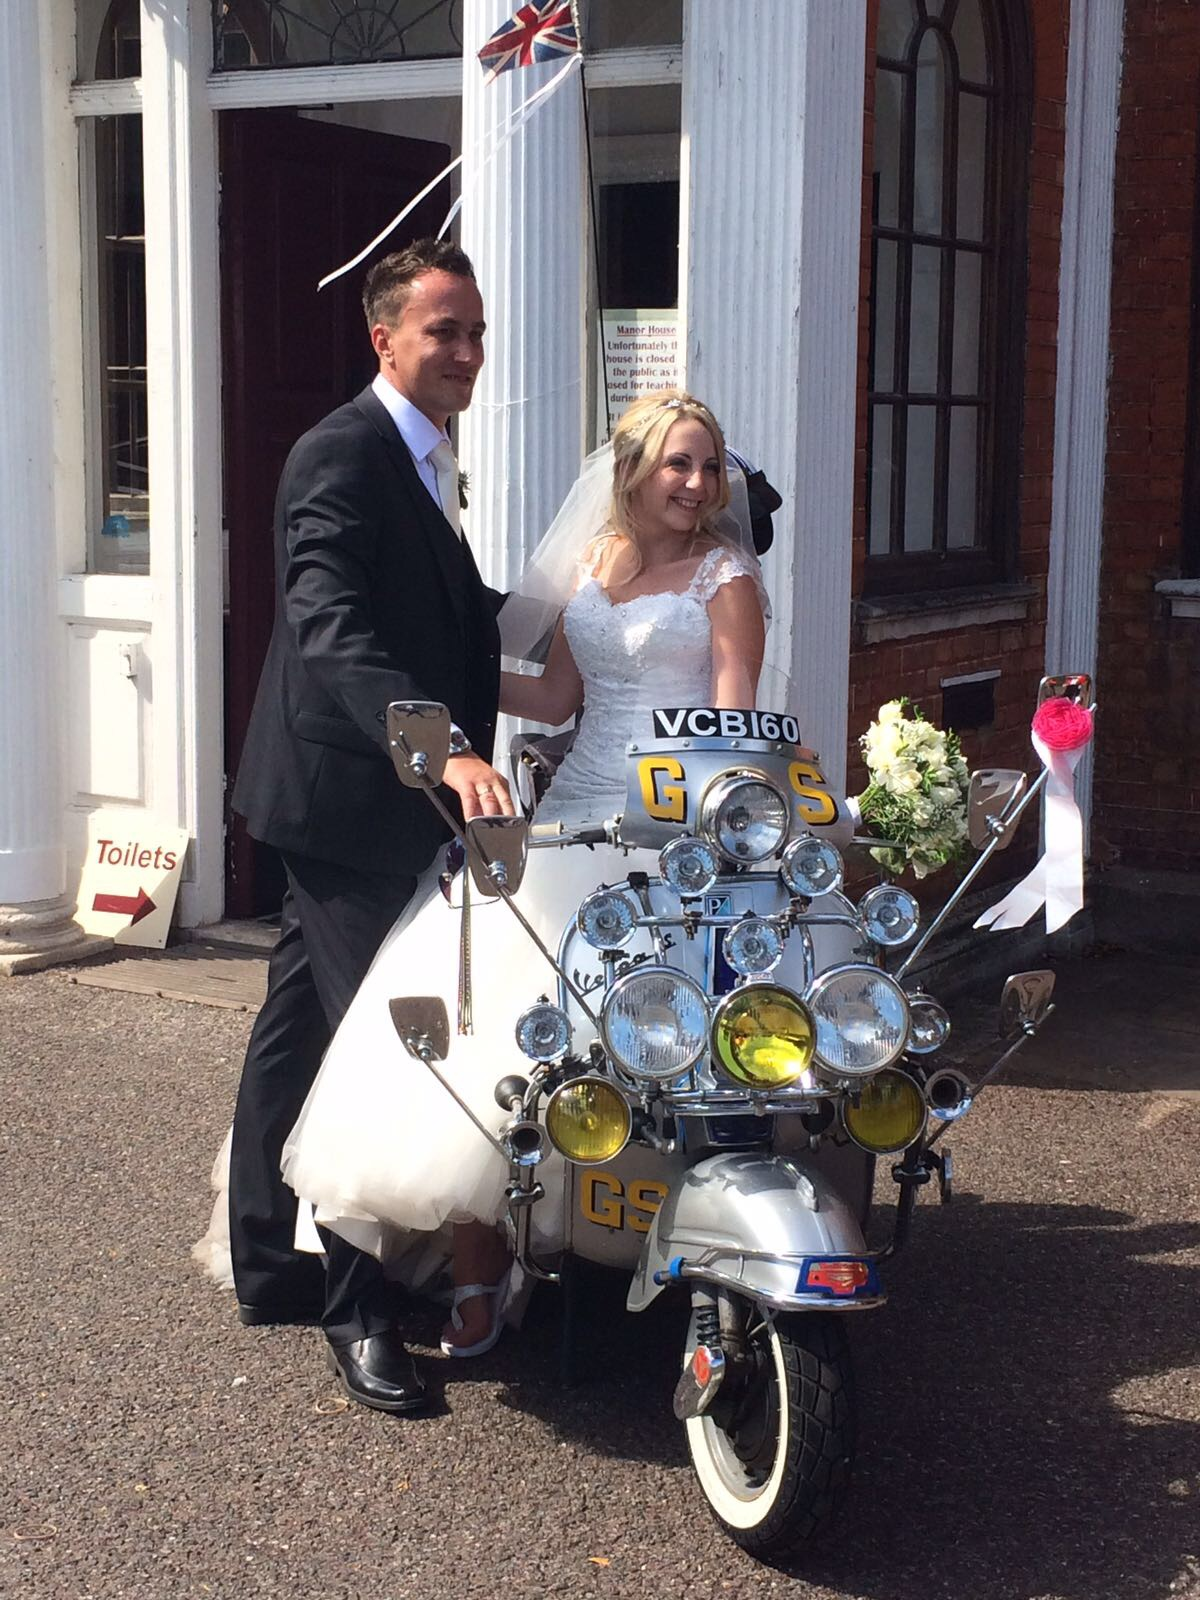 vintage bike wedding hire enfield